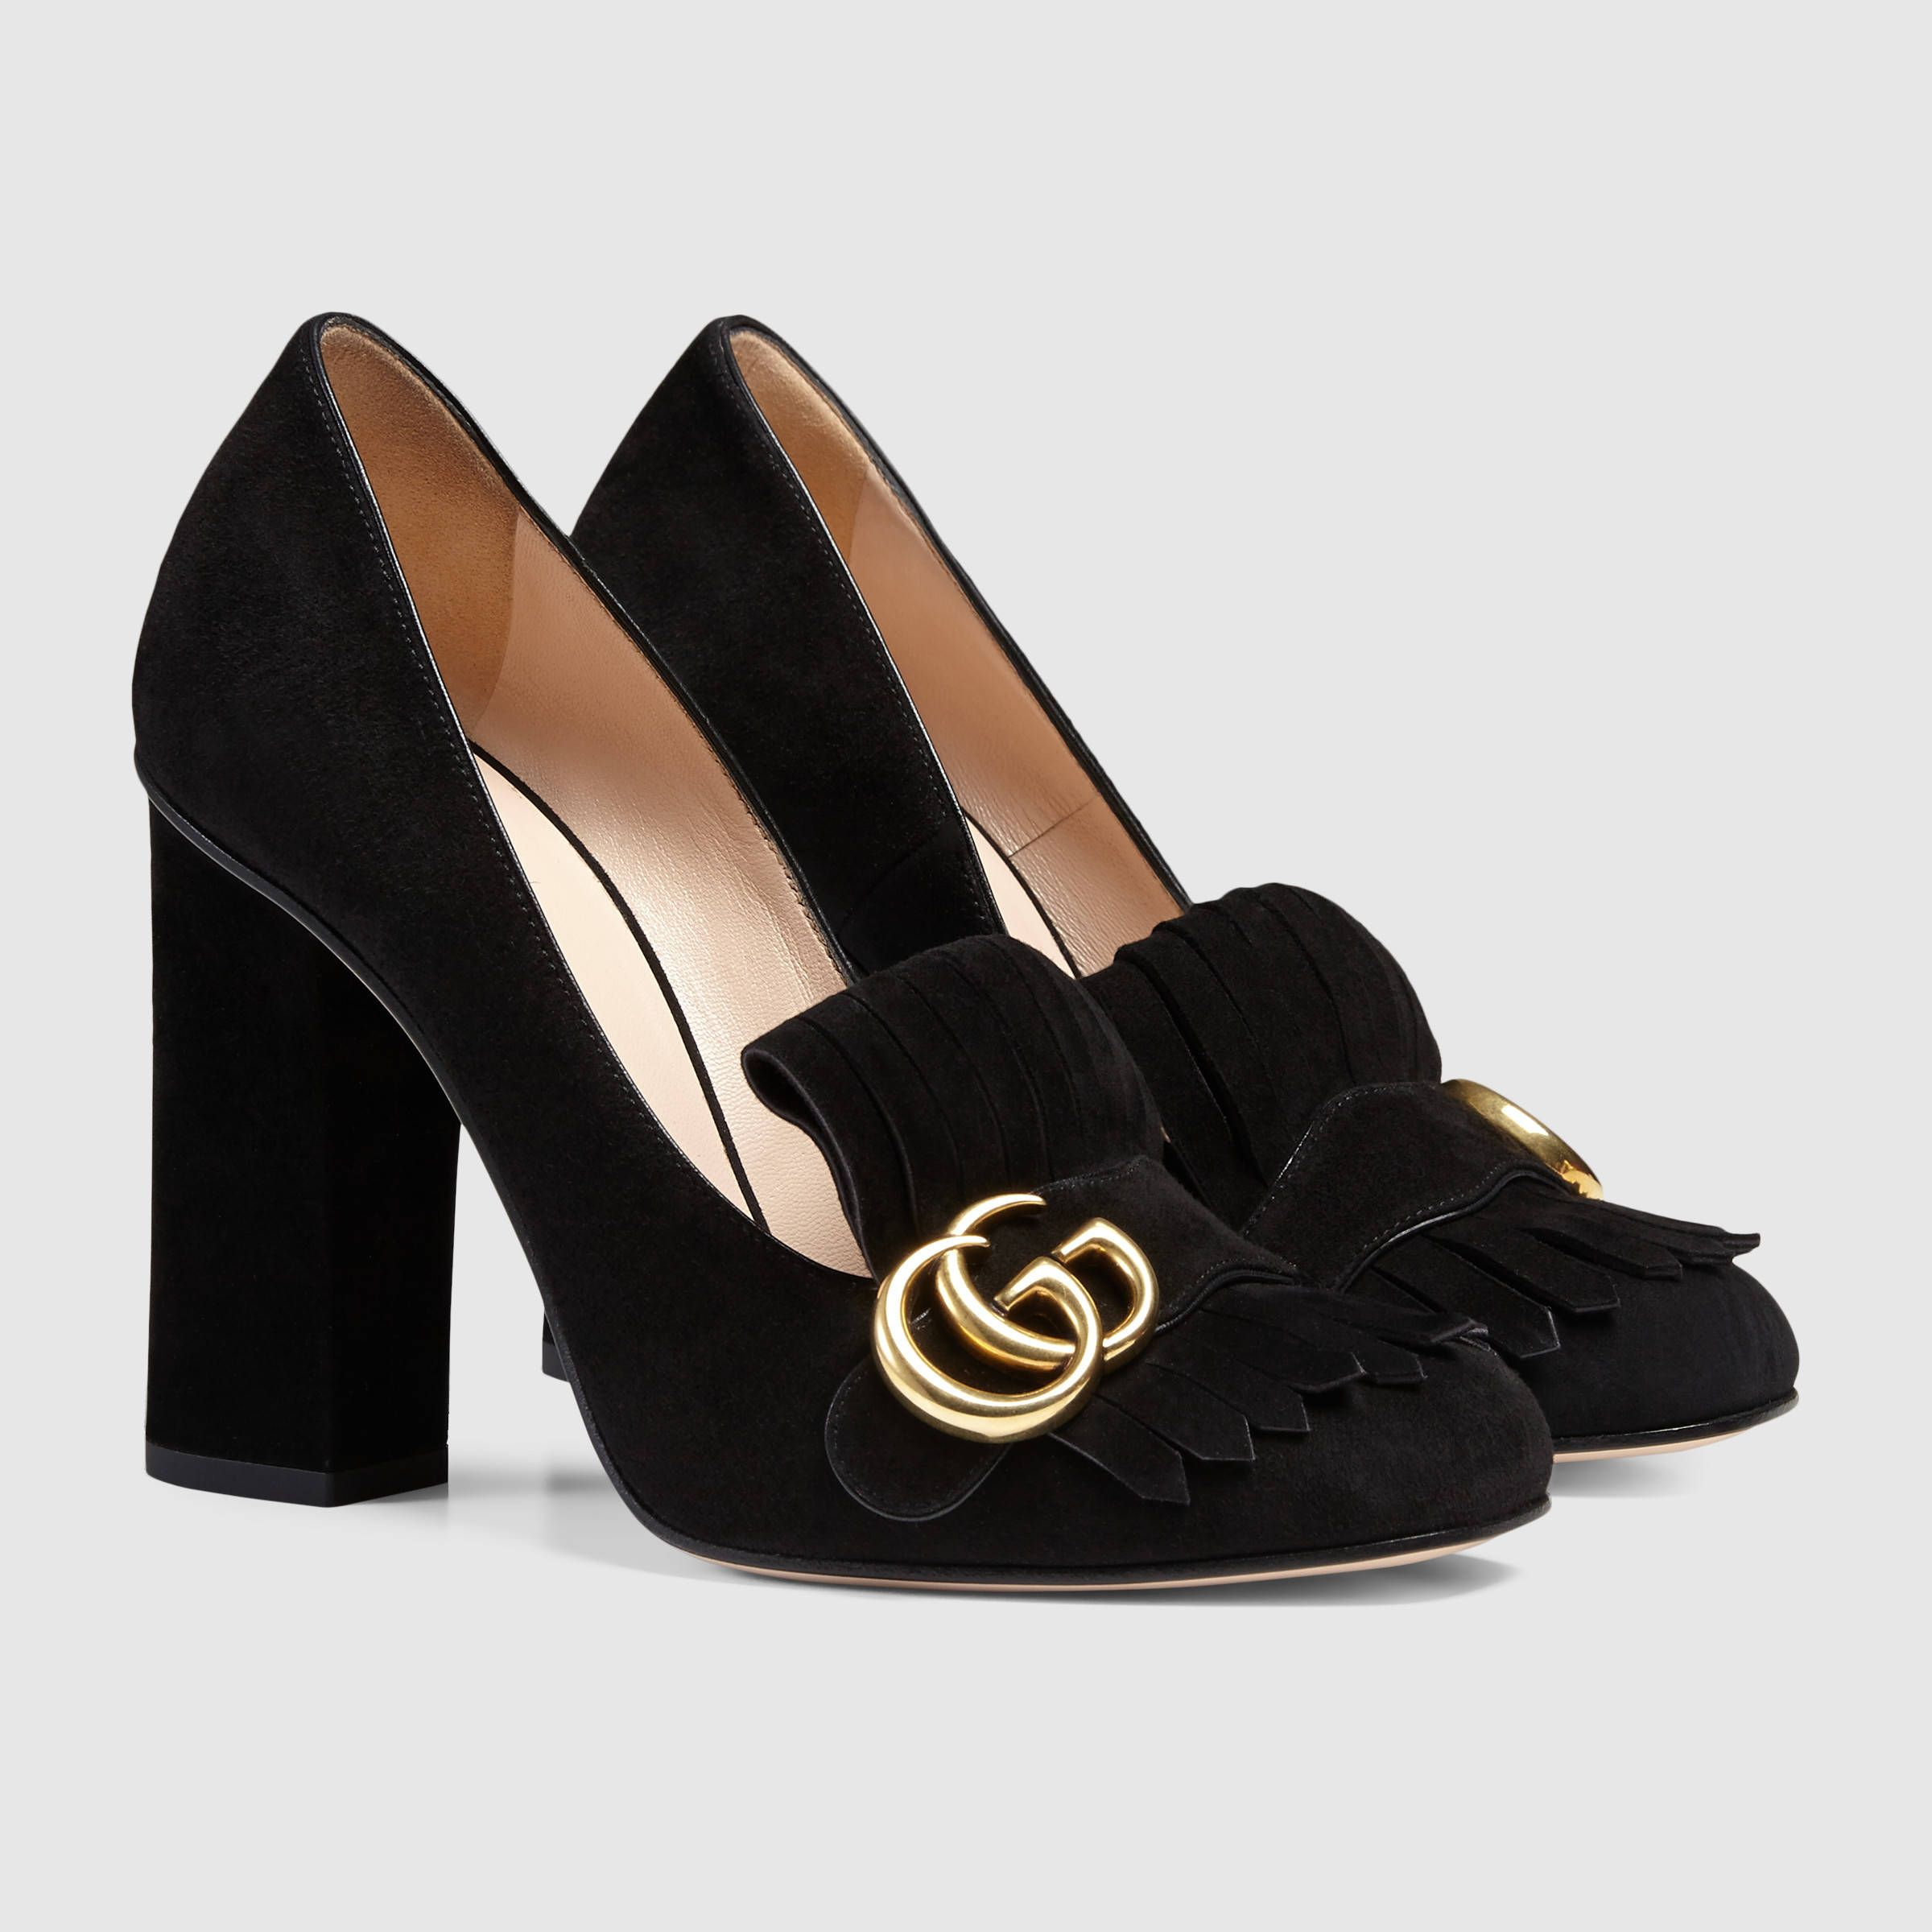 ivanka trump shoes shopstyle careersafeonline student 728826